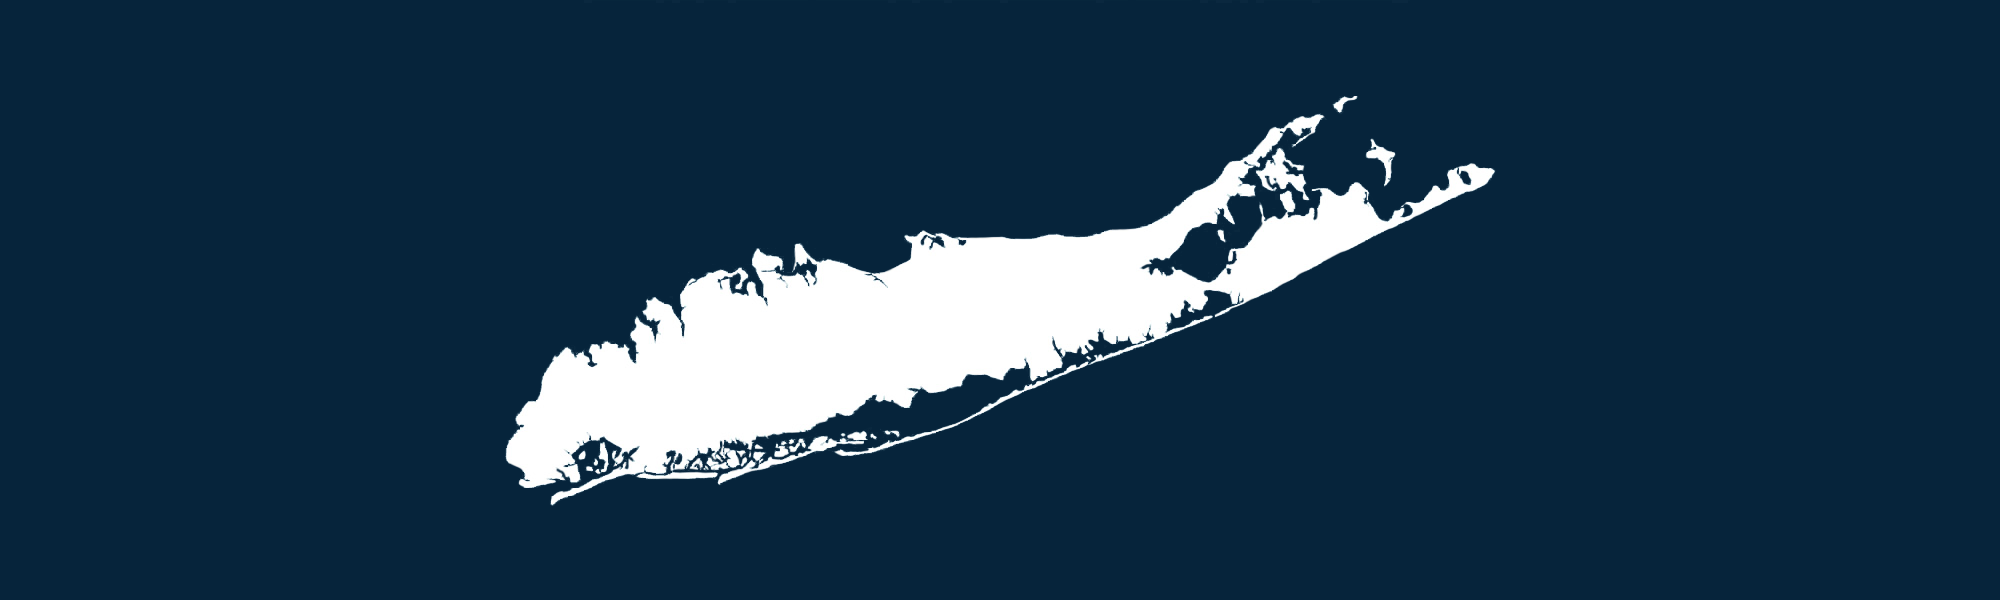 Blue and white image of Long Island